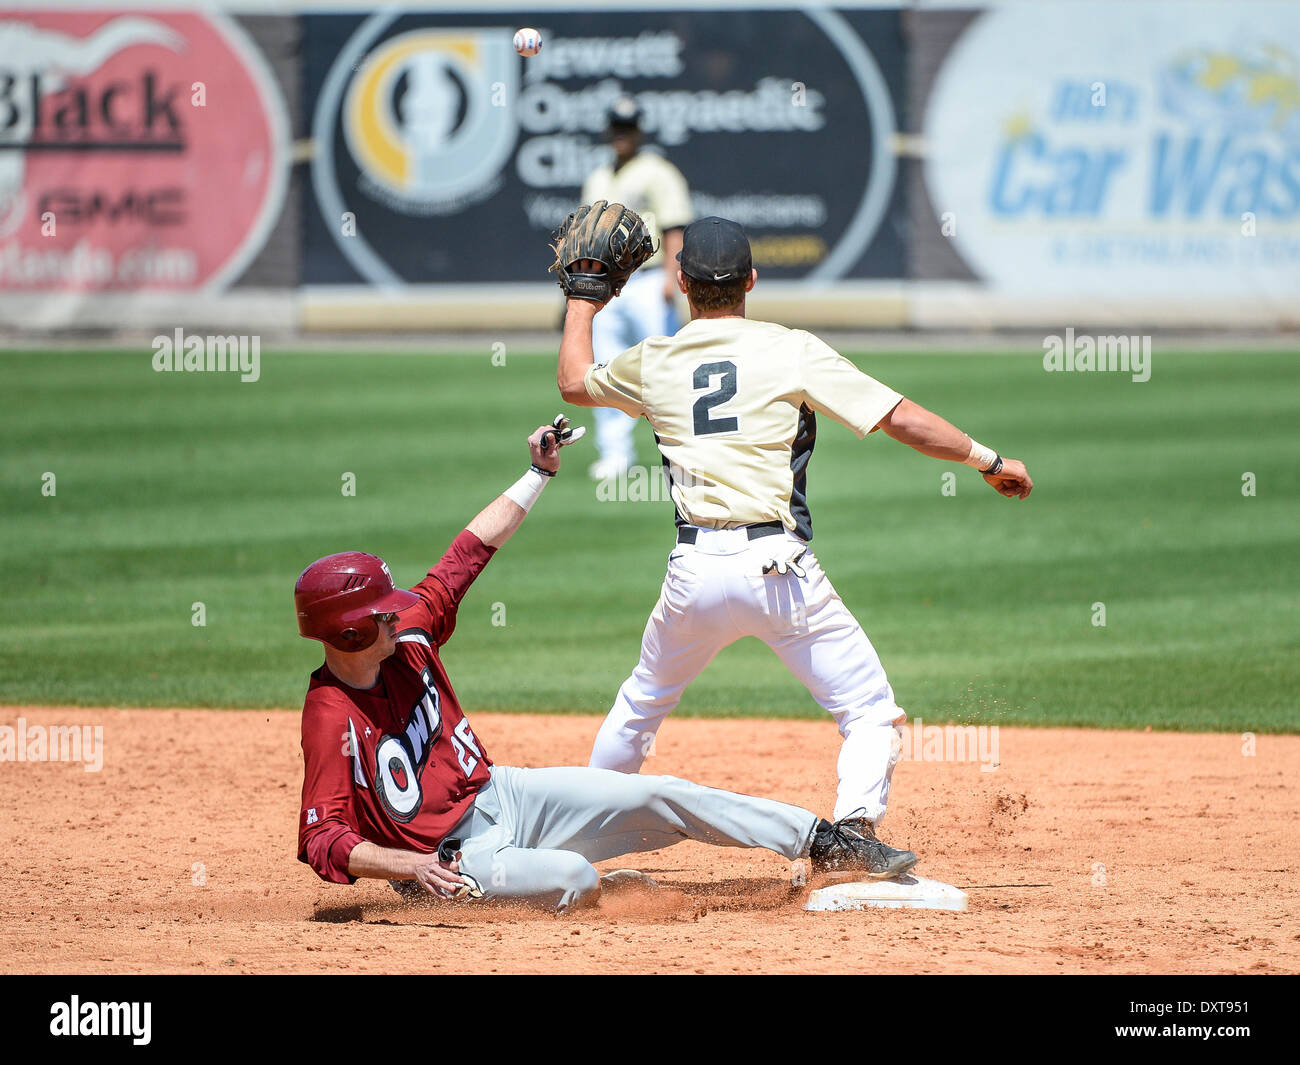 March 30, 2014 - Orlando, FL, U.S: Temple DH Andrew Nist (26) beats the throw to UCF infielder Dylan Moore (2) during NCAA baseball game action between the Temple Owls and the UCF Knights. UCF defeated Temple 12-5 at Jay Bergman Field in Orlando, FL - Stock Image